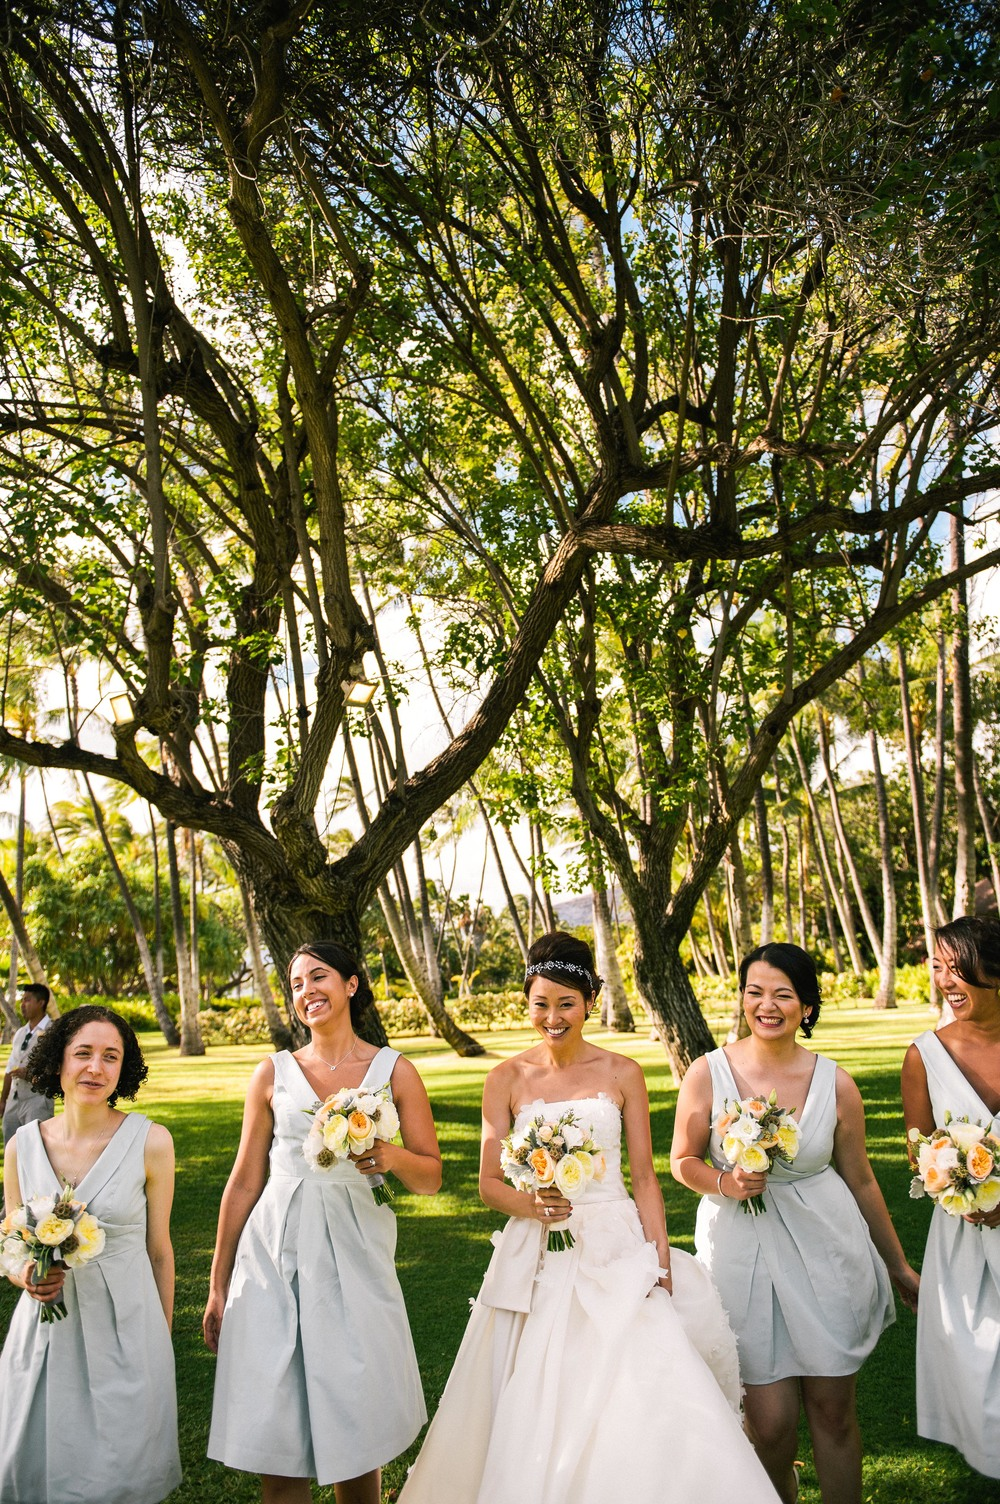 Destination Wedding at Lanikuhonua on Oahu | Michelle Garibay Events